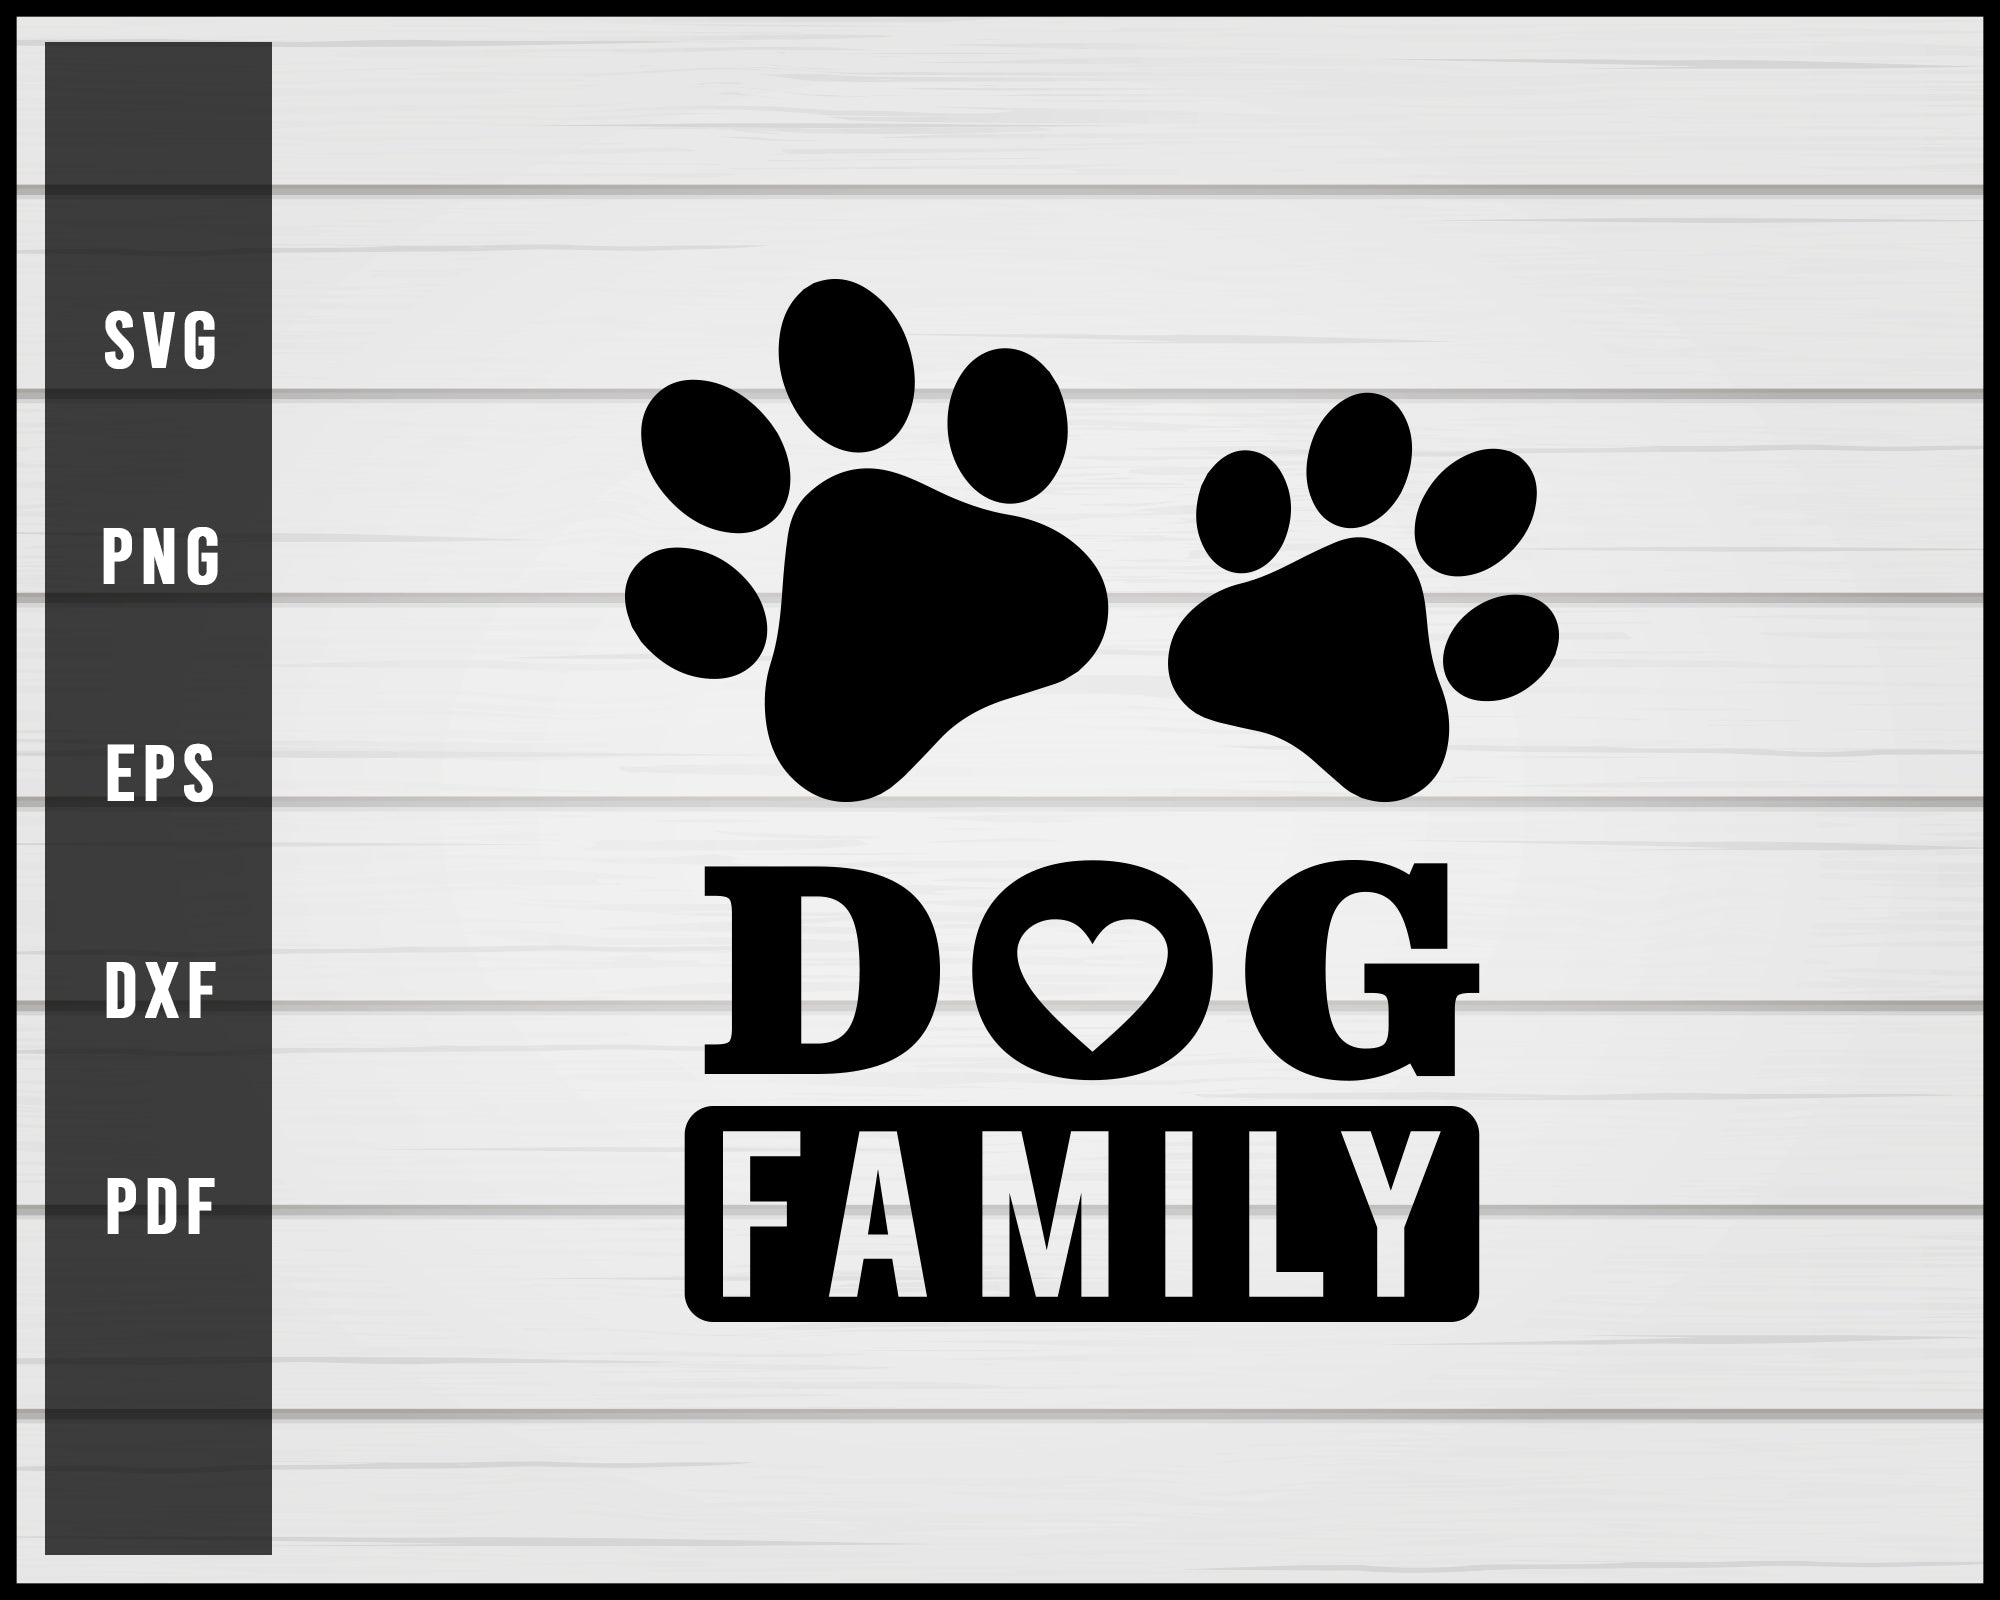 Dog Family svg png Silhouette Designs For Cricut And Printable Files